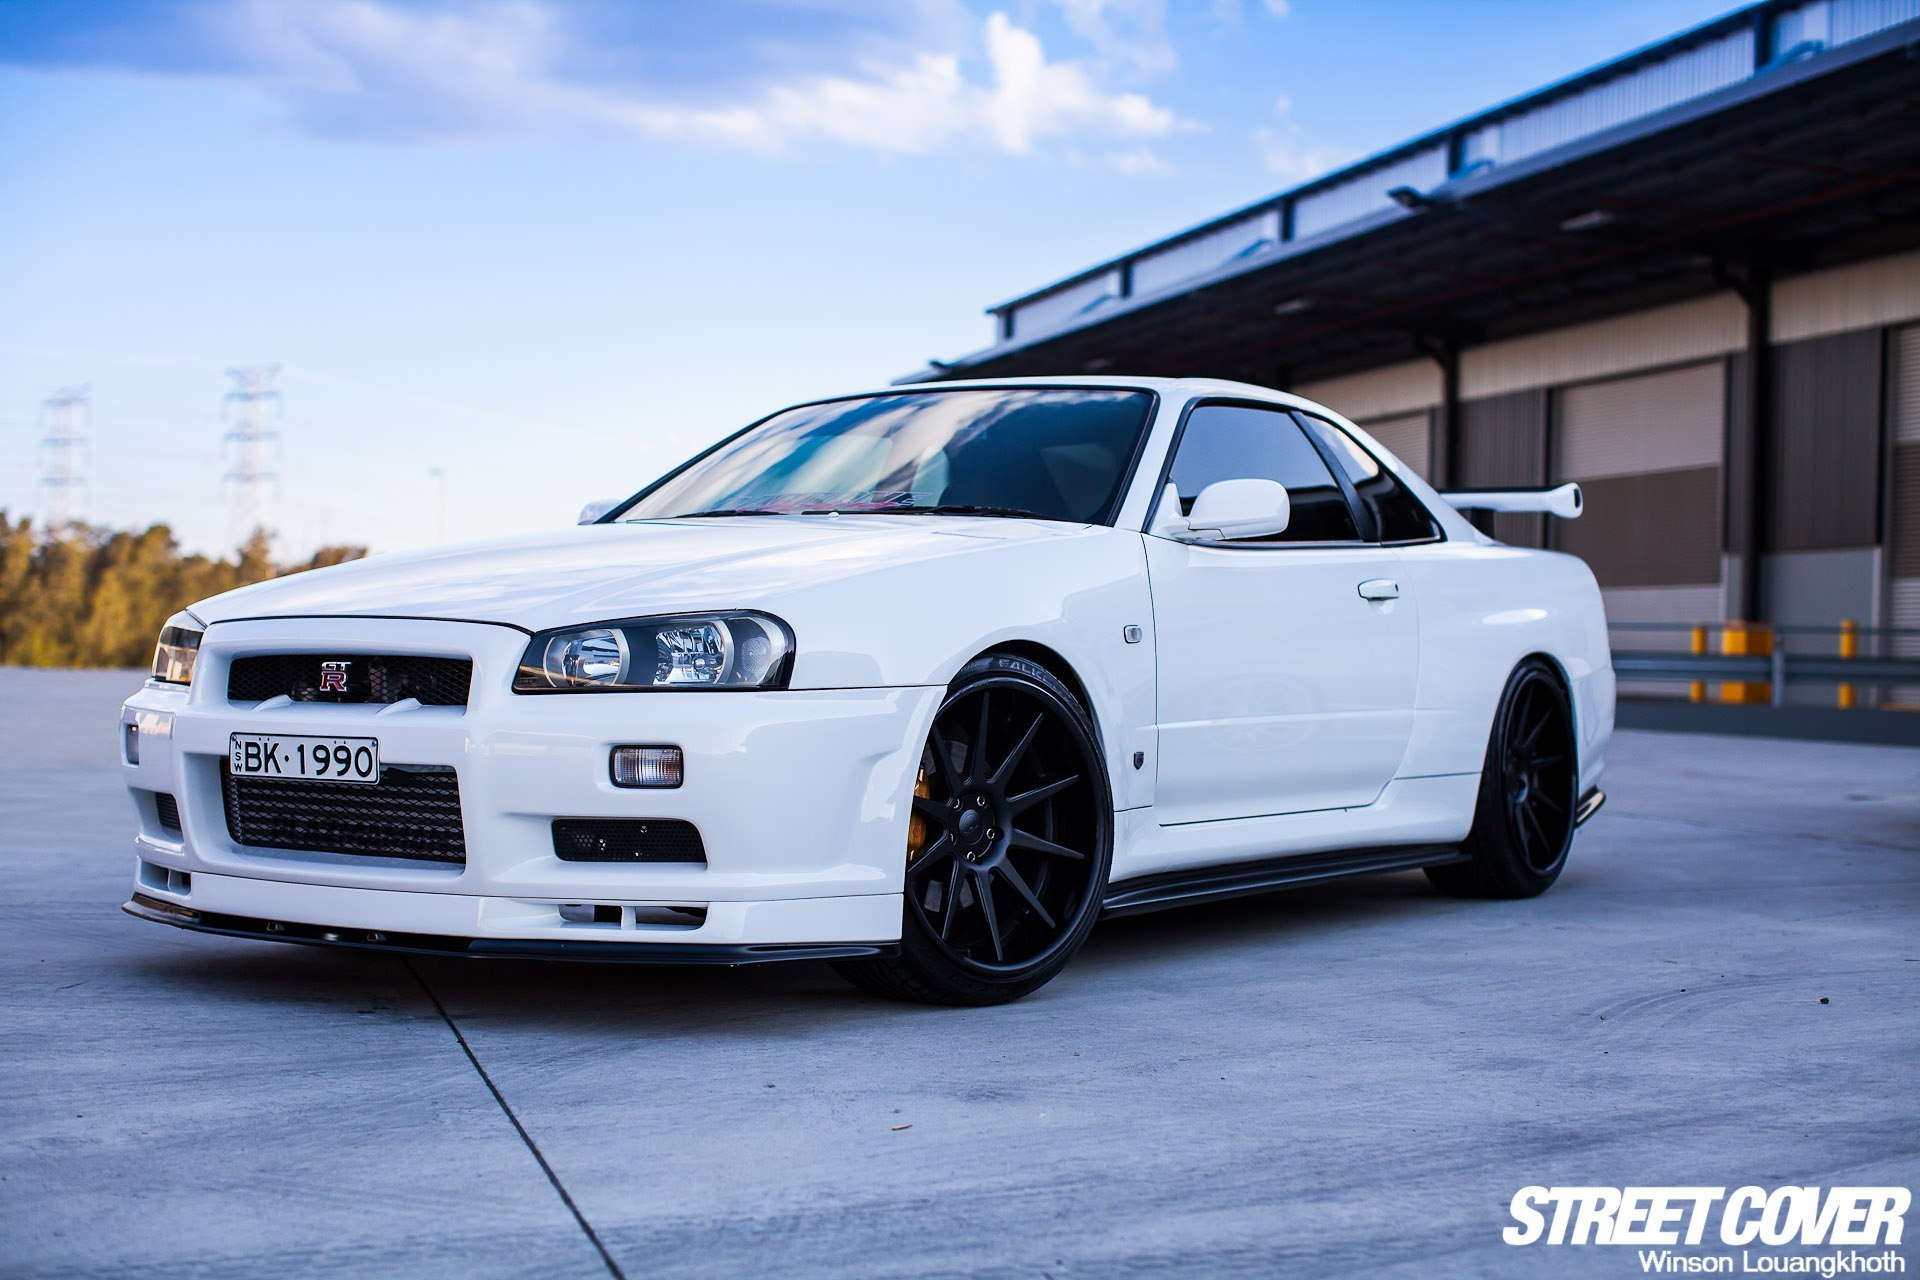 Free Download Nissan Skyline R34 Nismo Tuning Jdm Turbo Rb